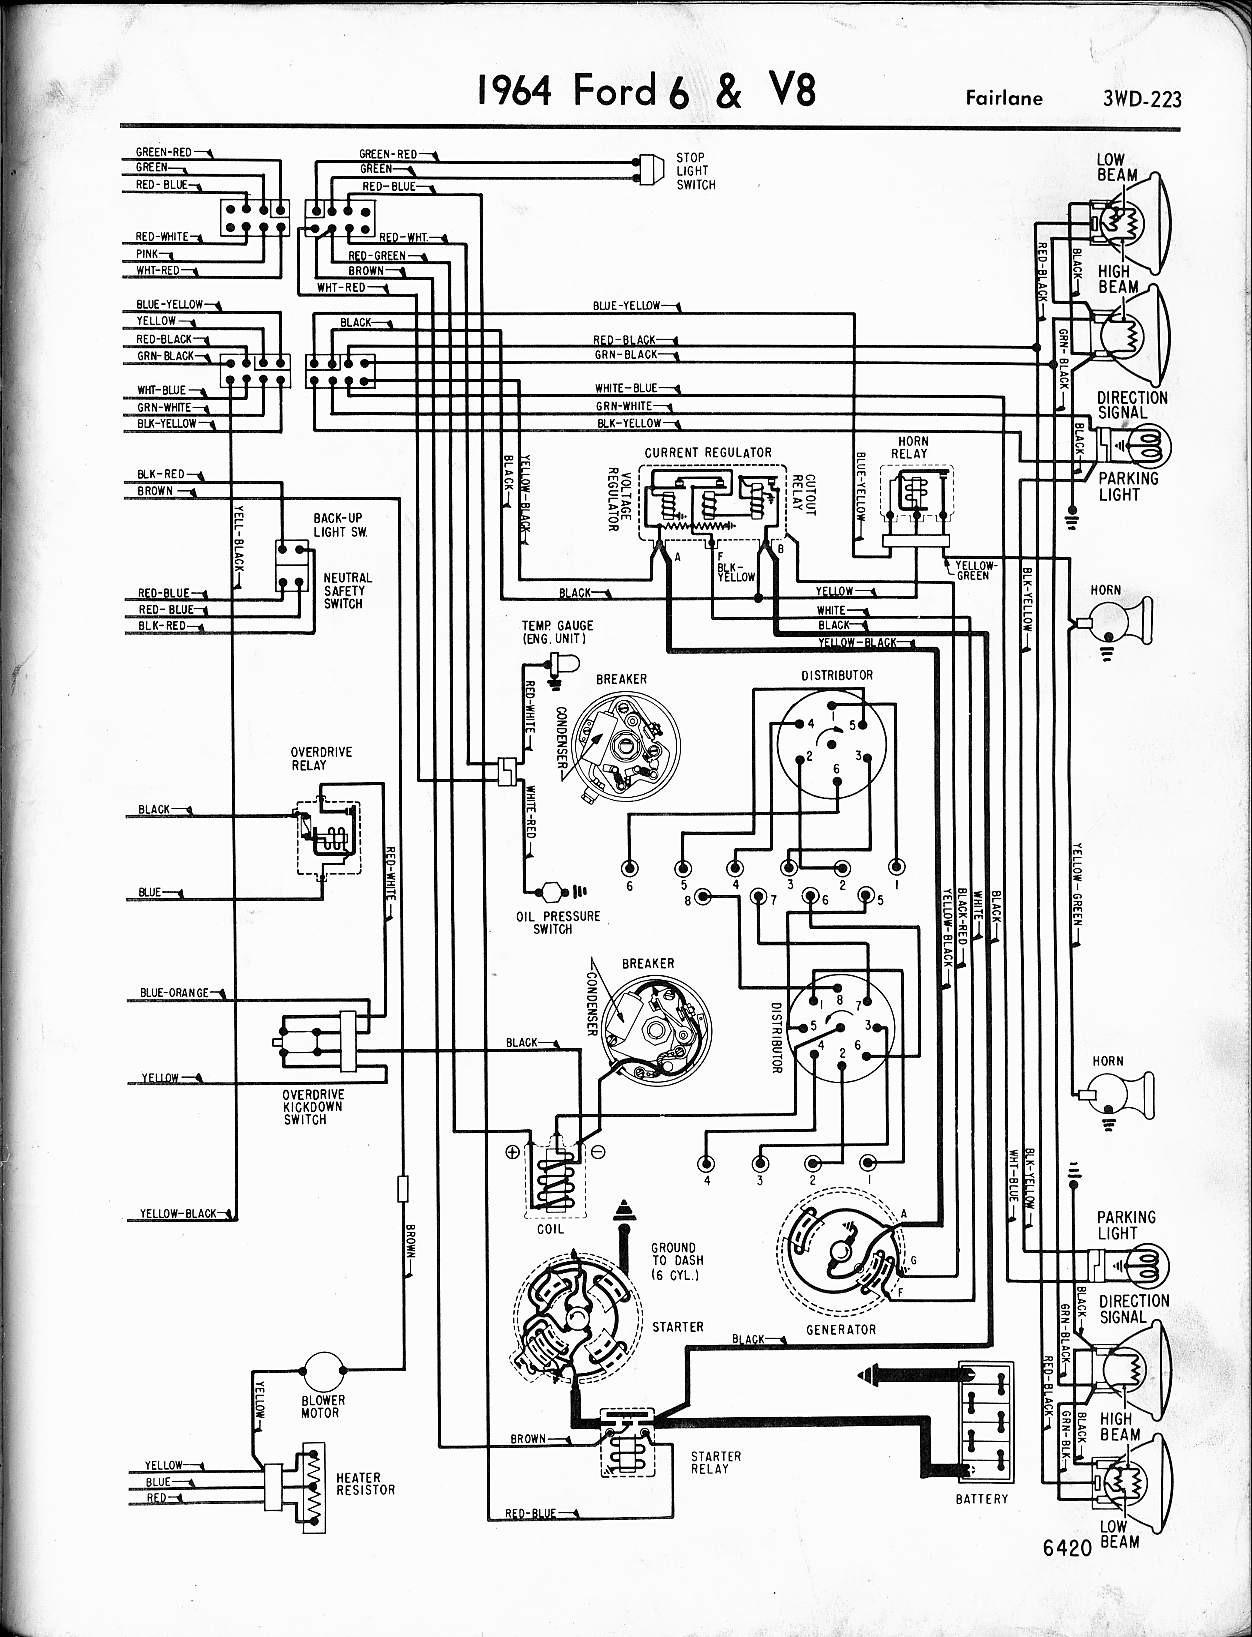 1956 chrysler wiring diagram 1956 wiring diagrams online 1956 chrysler wiring diagram 1956 auto wiring diagram schematic